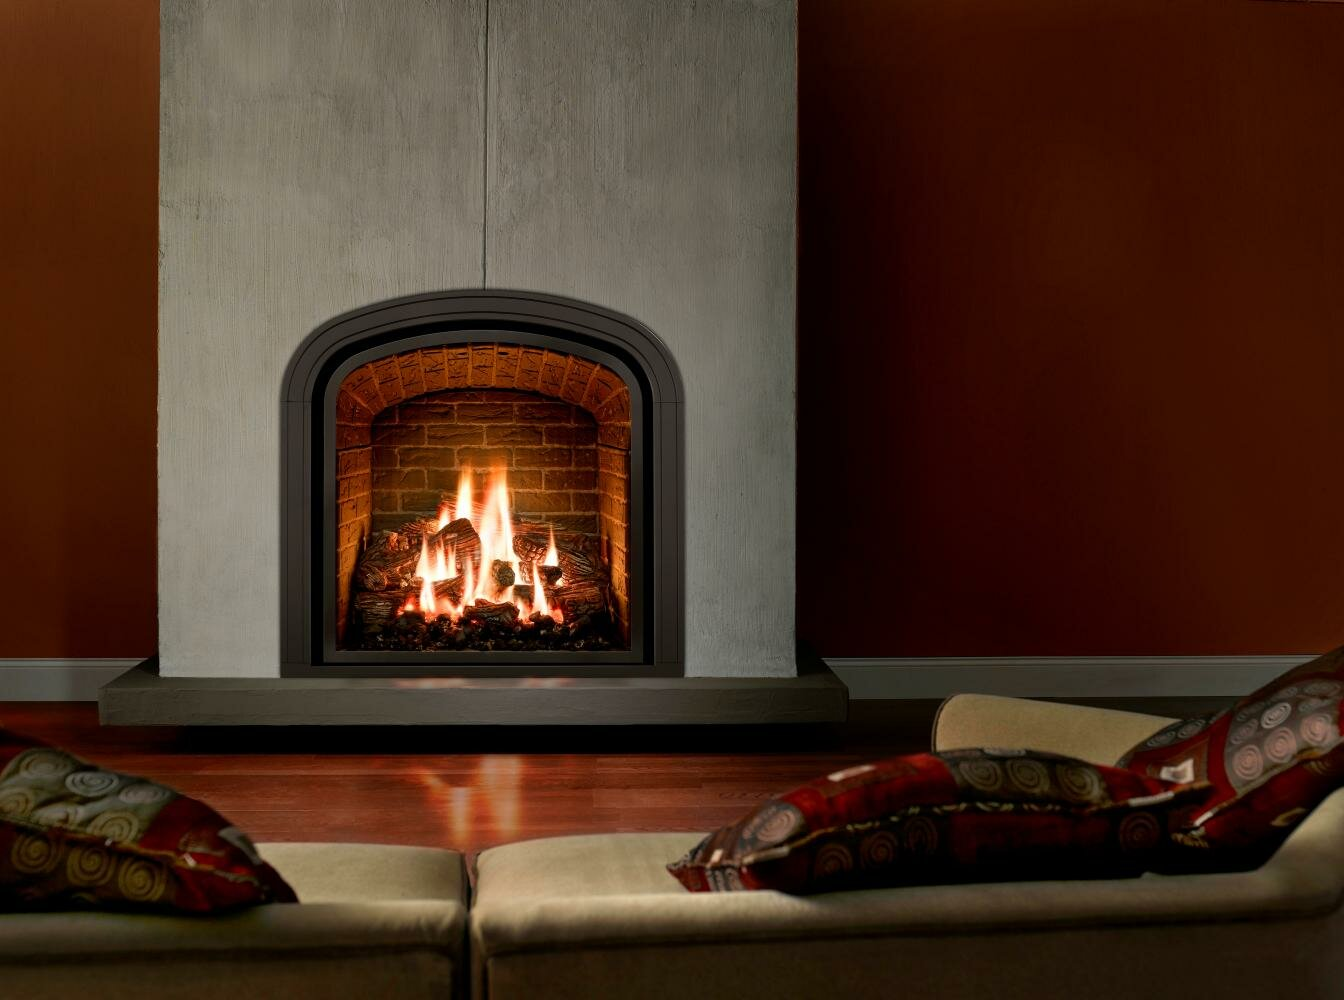 The 15 most beautiful fireplace designs ever Fireplace design ideas